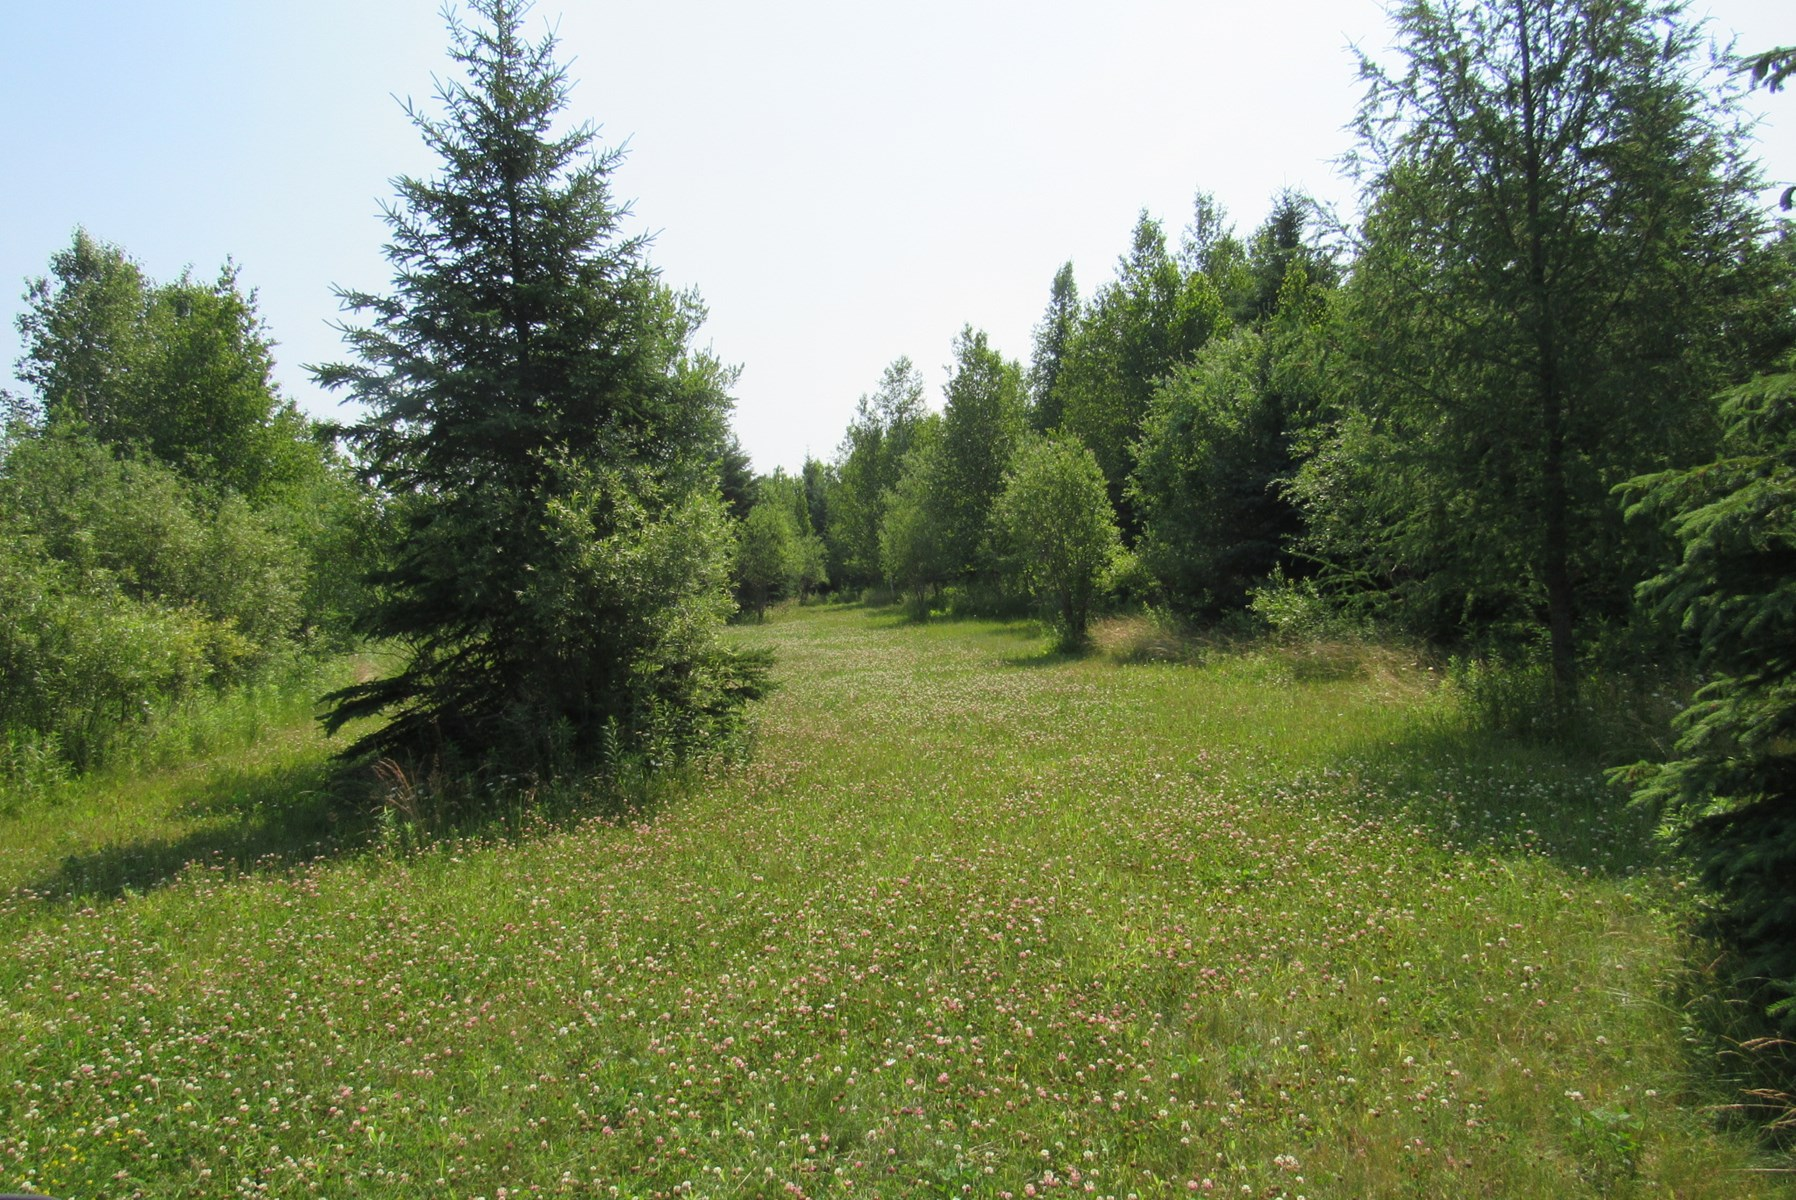 Over 150 Acres of Hunting Land For Sale Near Barnum, MN